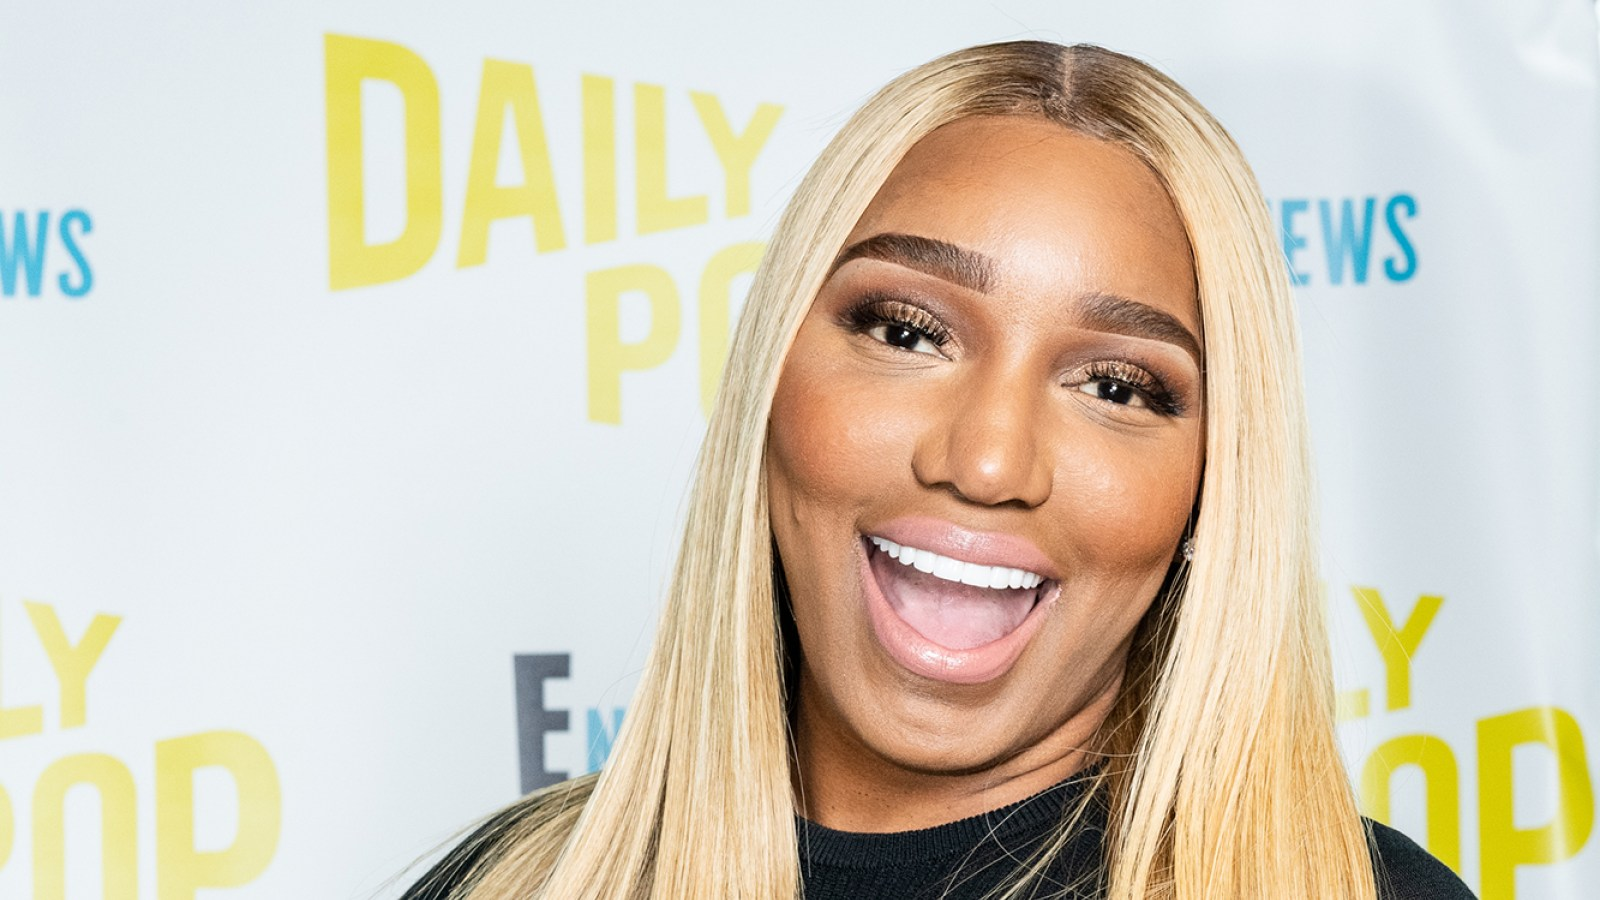 """nene-leakes-just-told-her-fans-she-has-outdone-herself-and-they-advised-her-to-move-on-from-rhoa-see-her-pics-and-videos"""